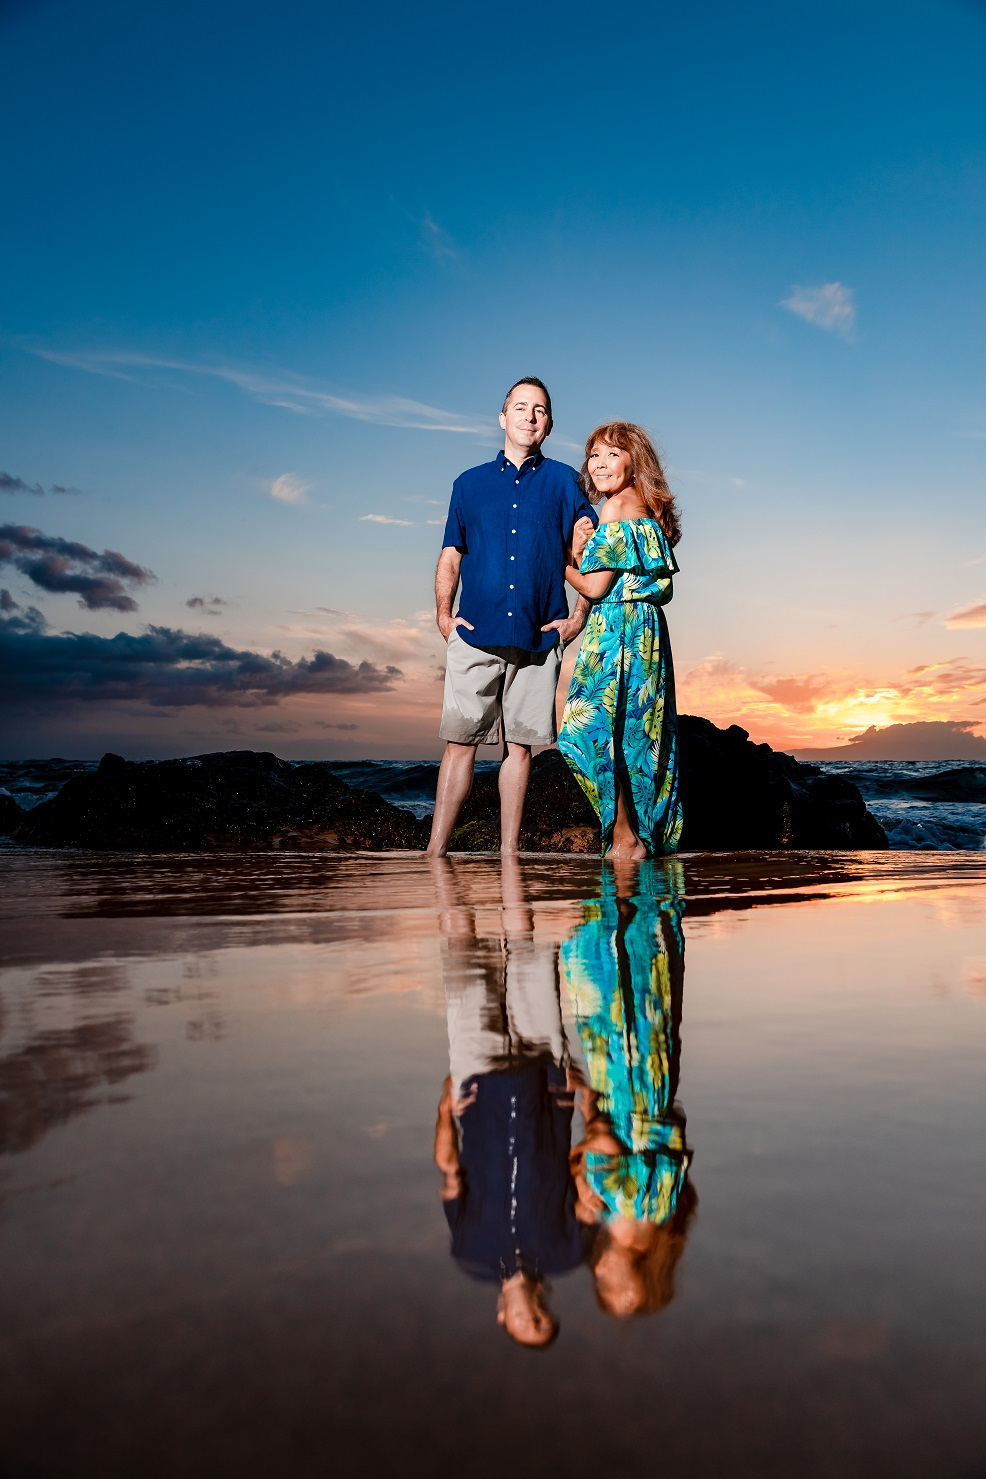 maui couples portrait reflection ocean sunset